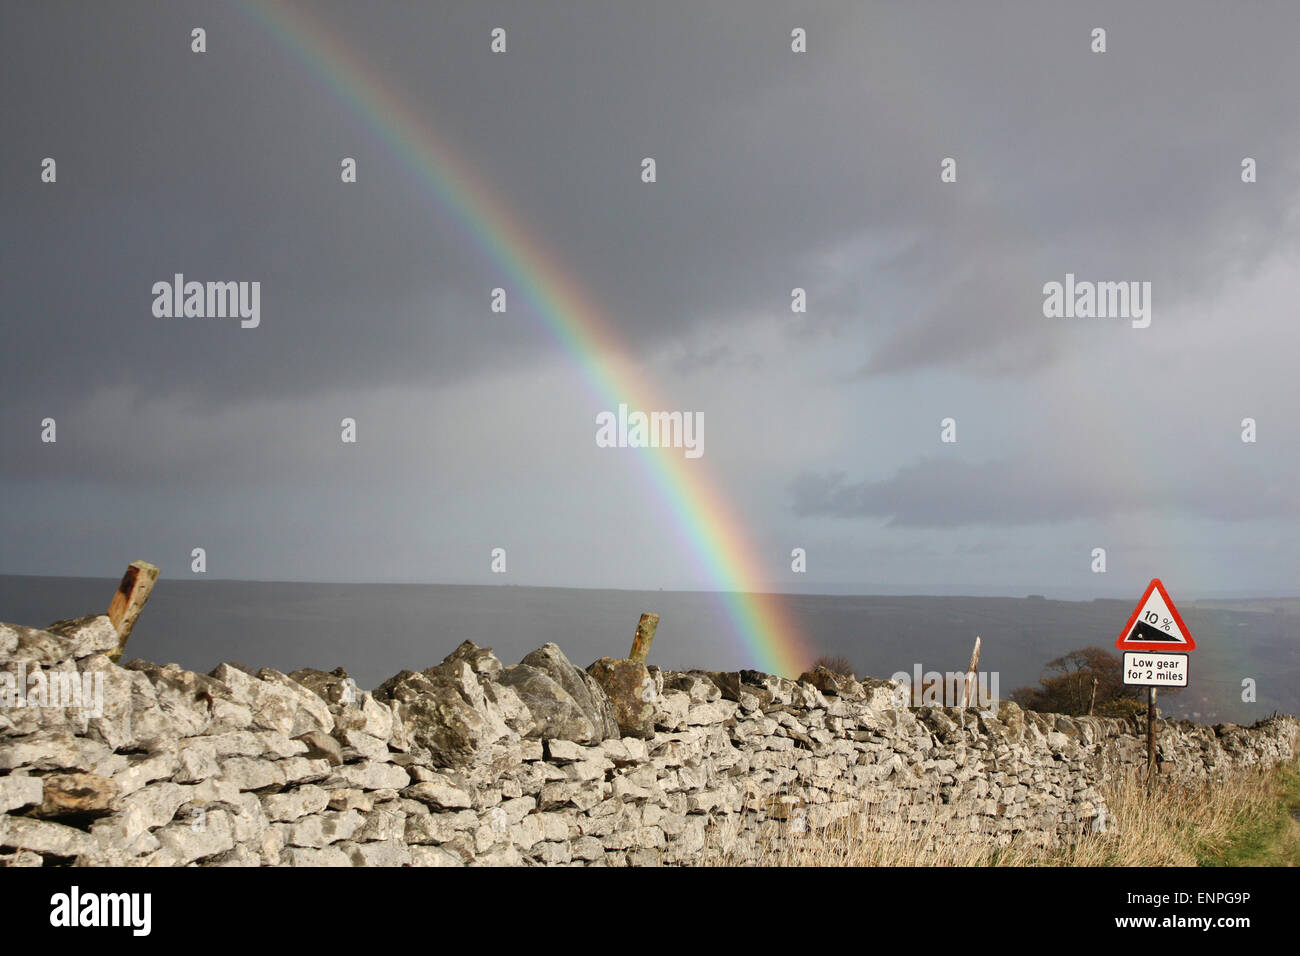 Rainbow behind a dry stone wall in Yorkshire. - Stock Image